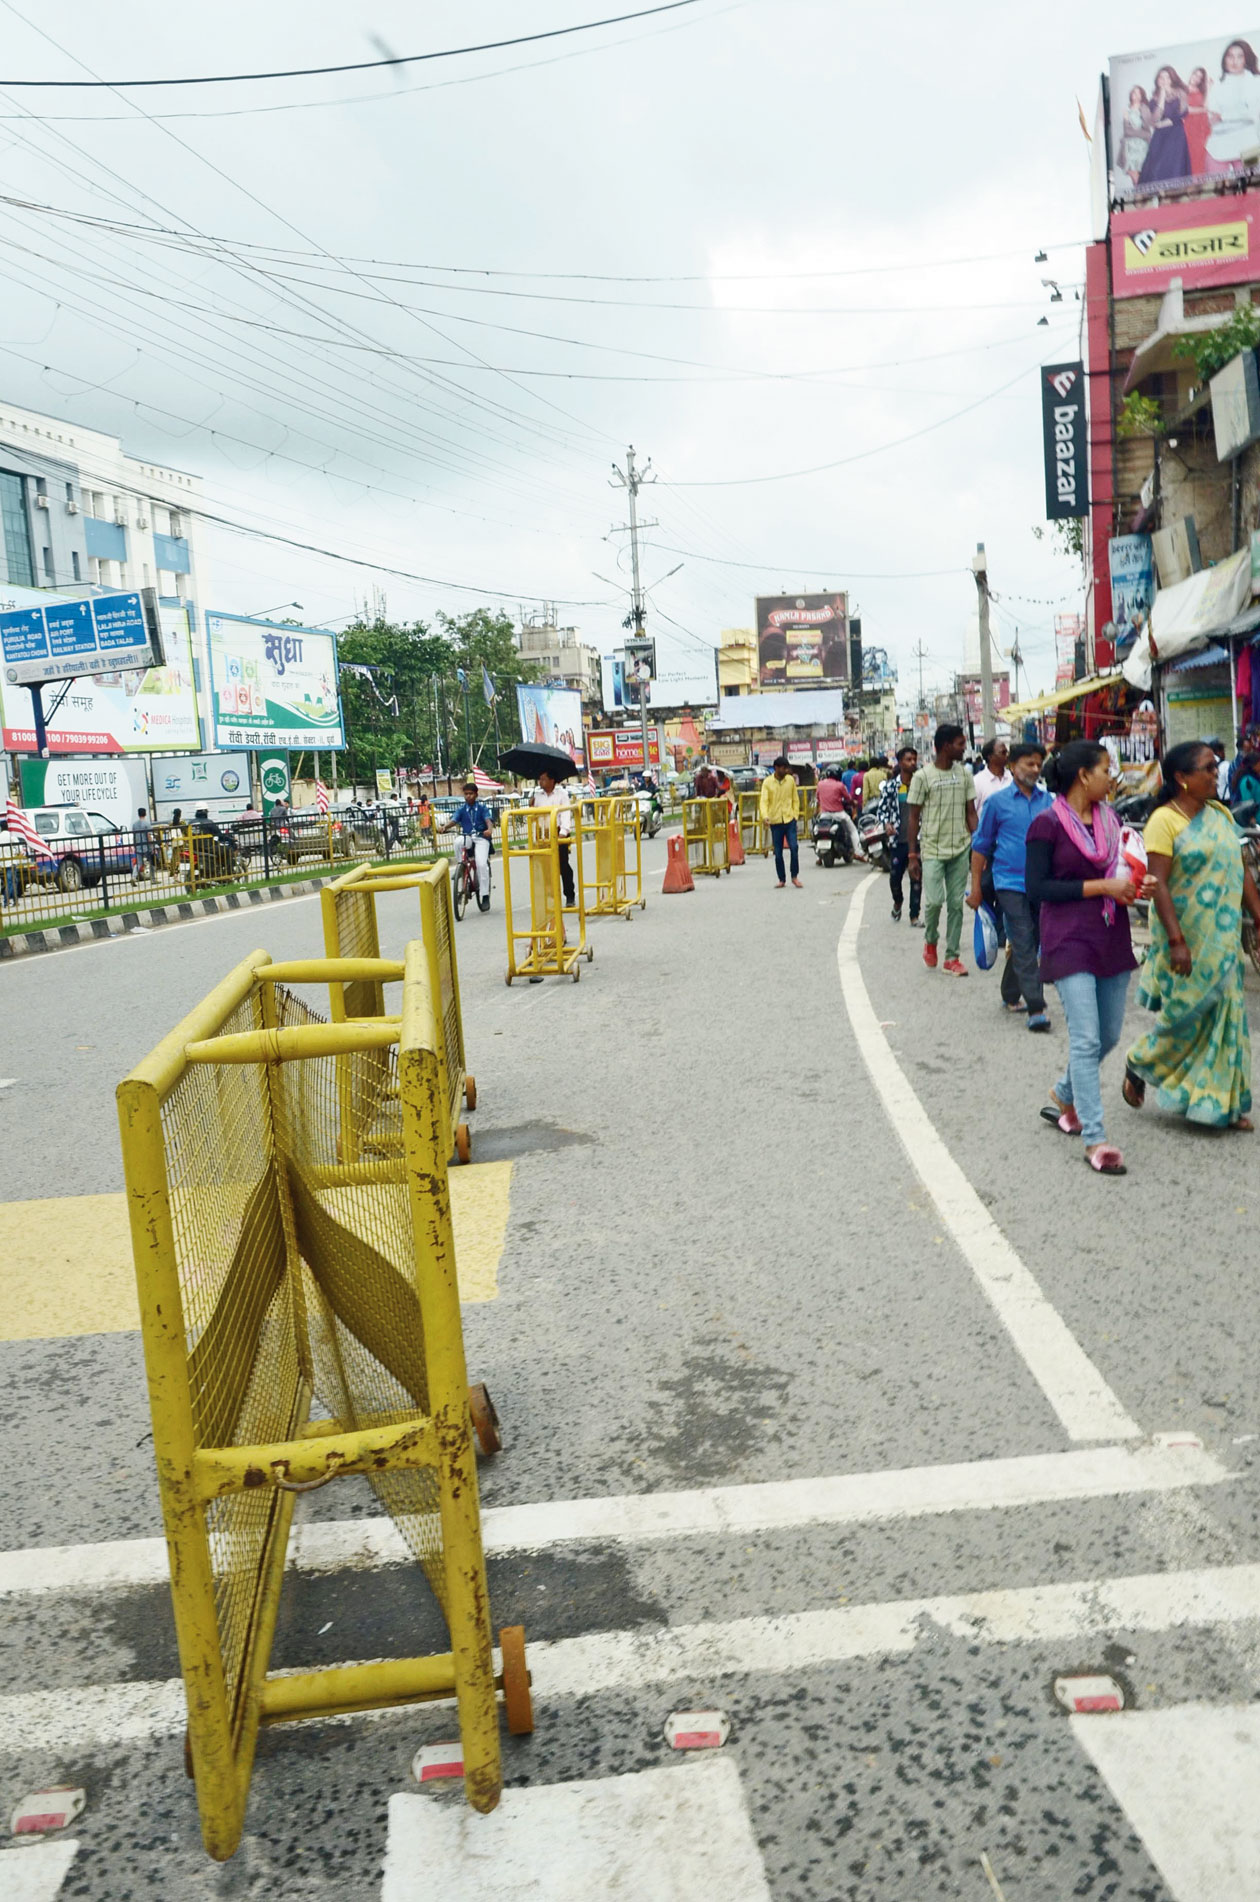 Sliding barriers put up by RMC on Main Road in Ranchi to demarcate the pedestrian pathway earlier this month.